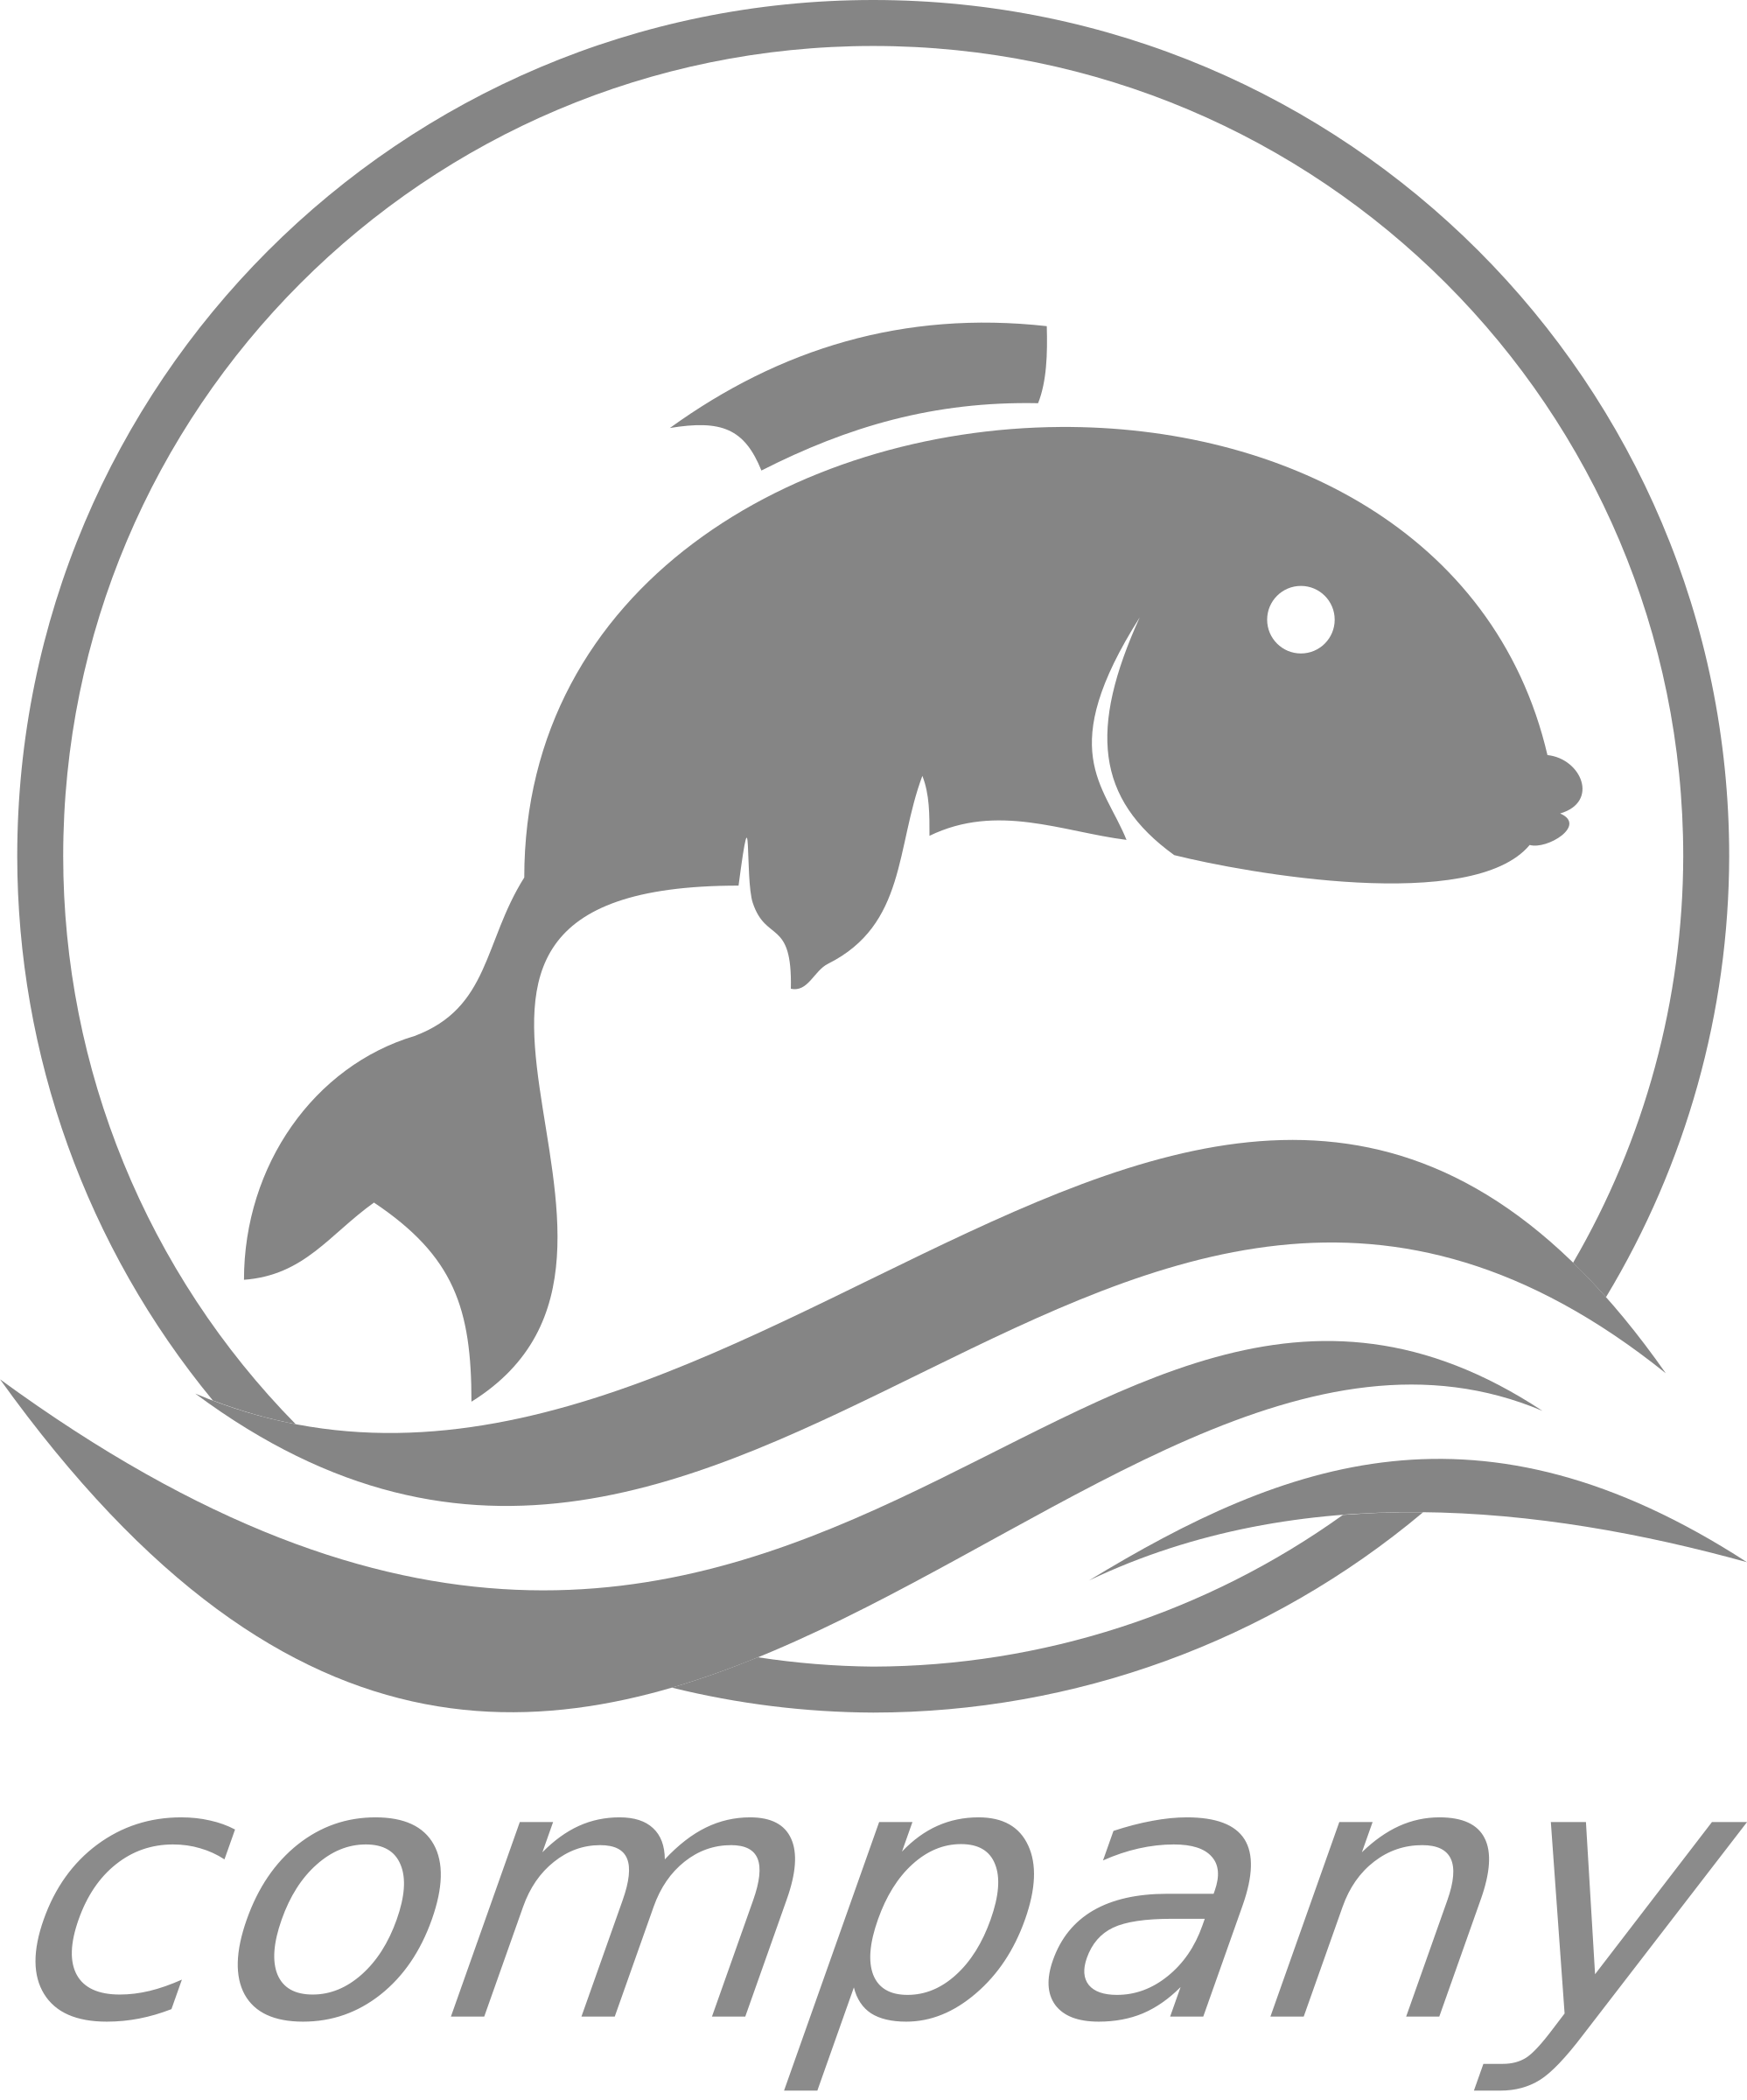 Fish big image png. Picture clipart logo